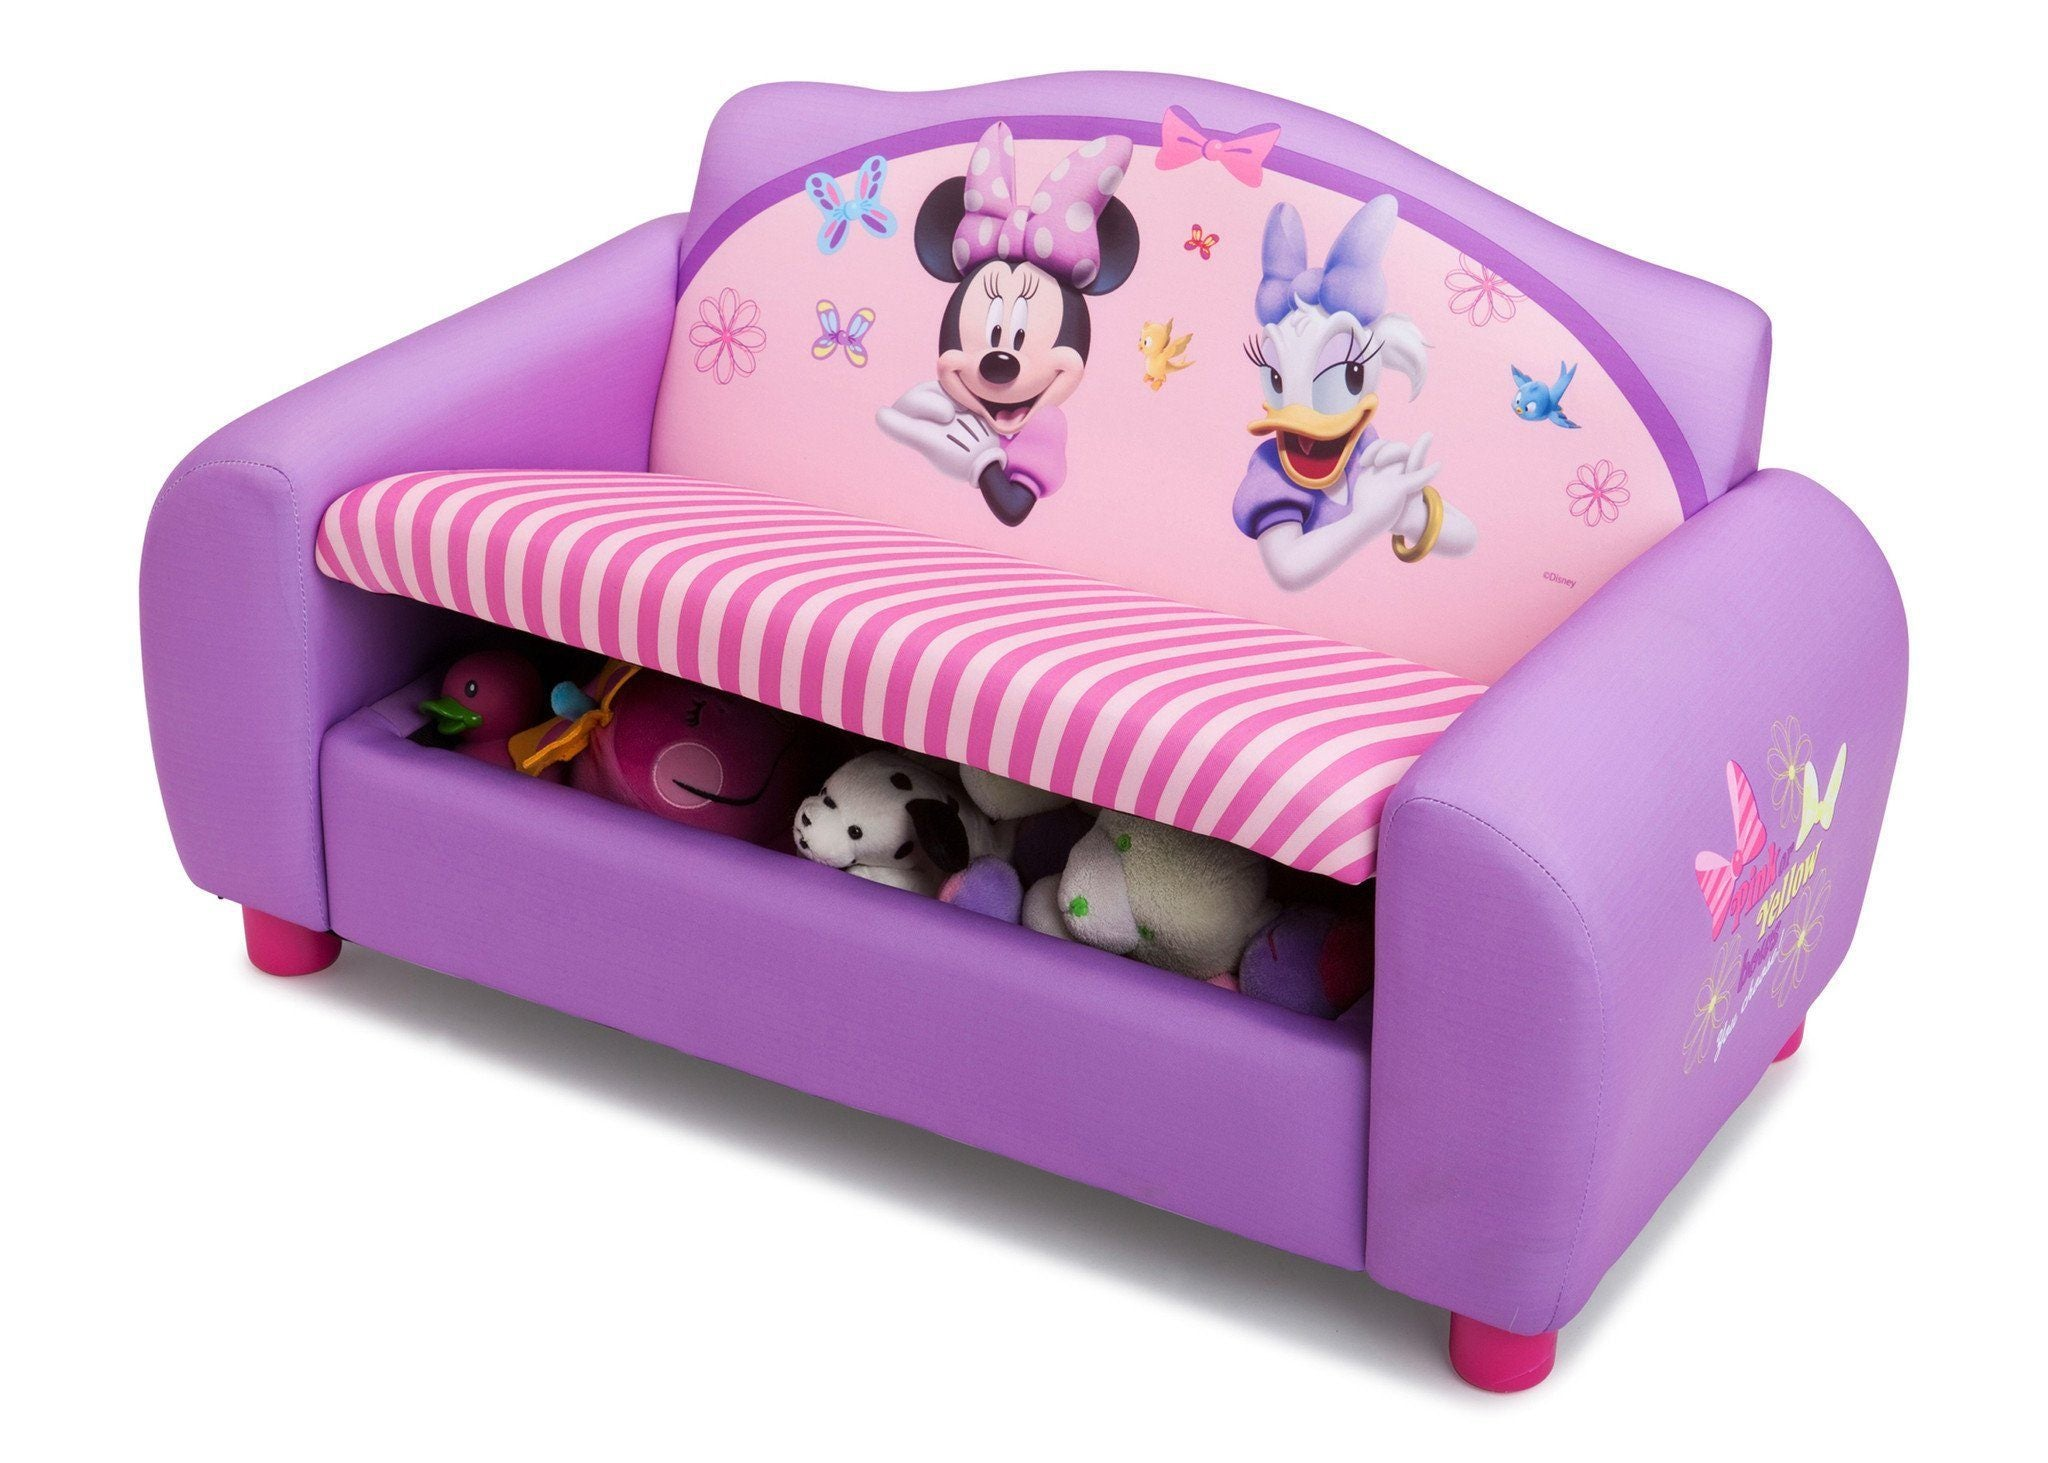 ... Delta Children Minnie Mouse Upholstered Sofa Left Side View With Storage  Option A2a